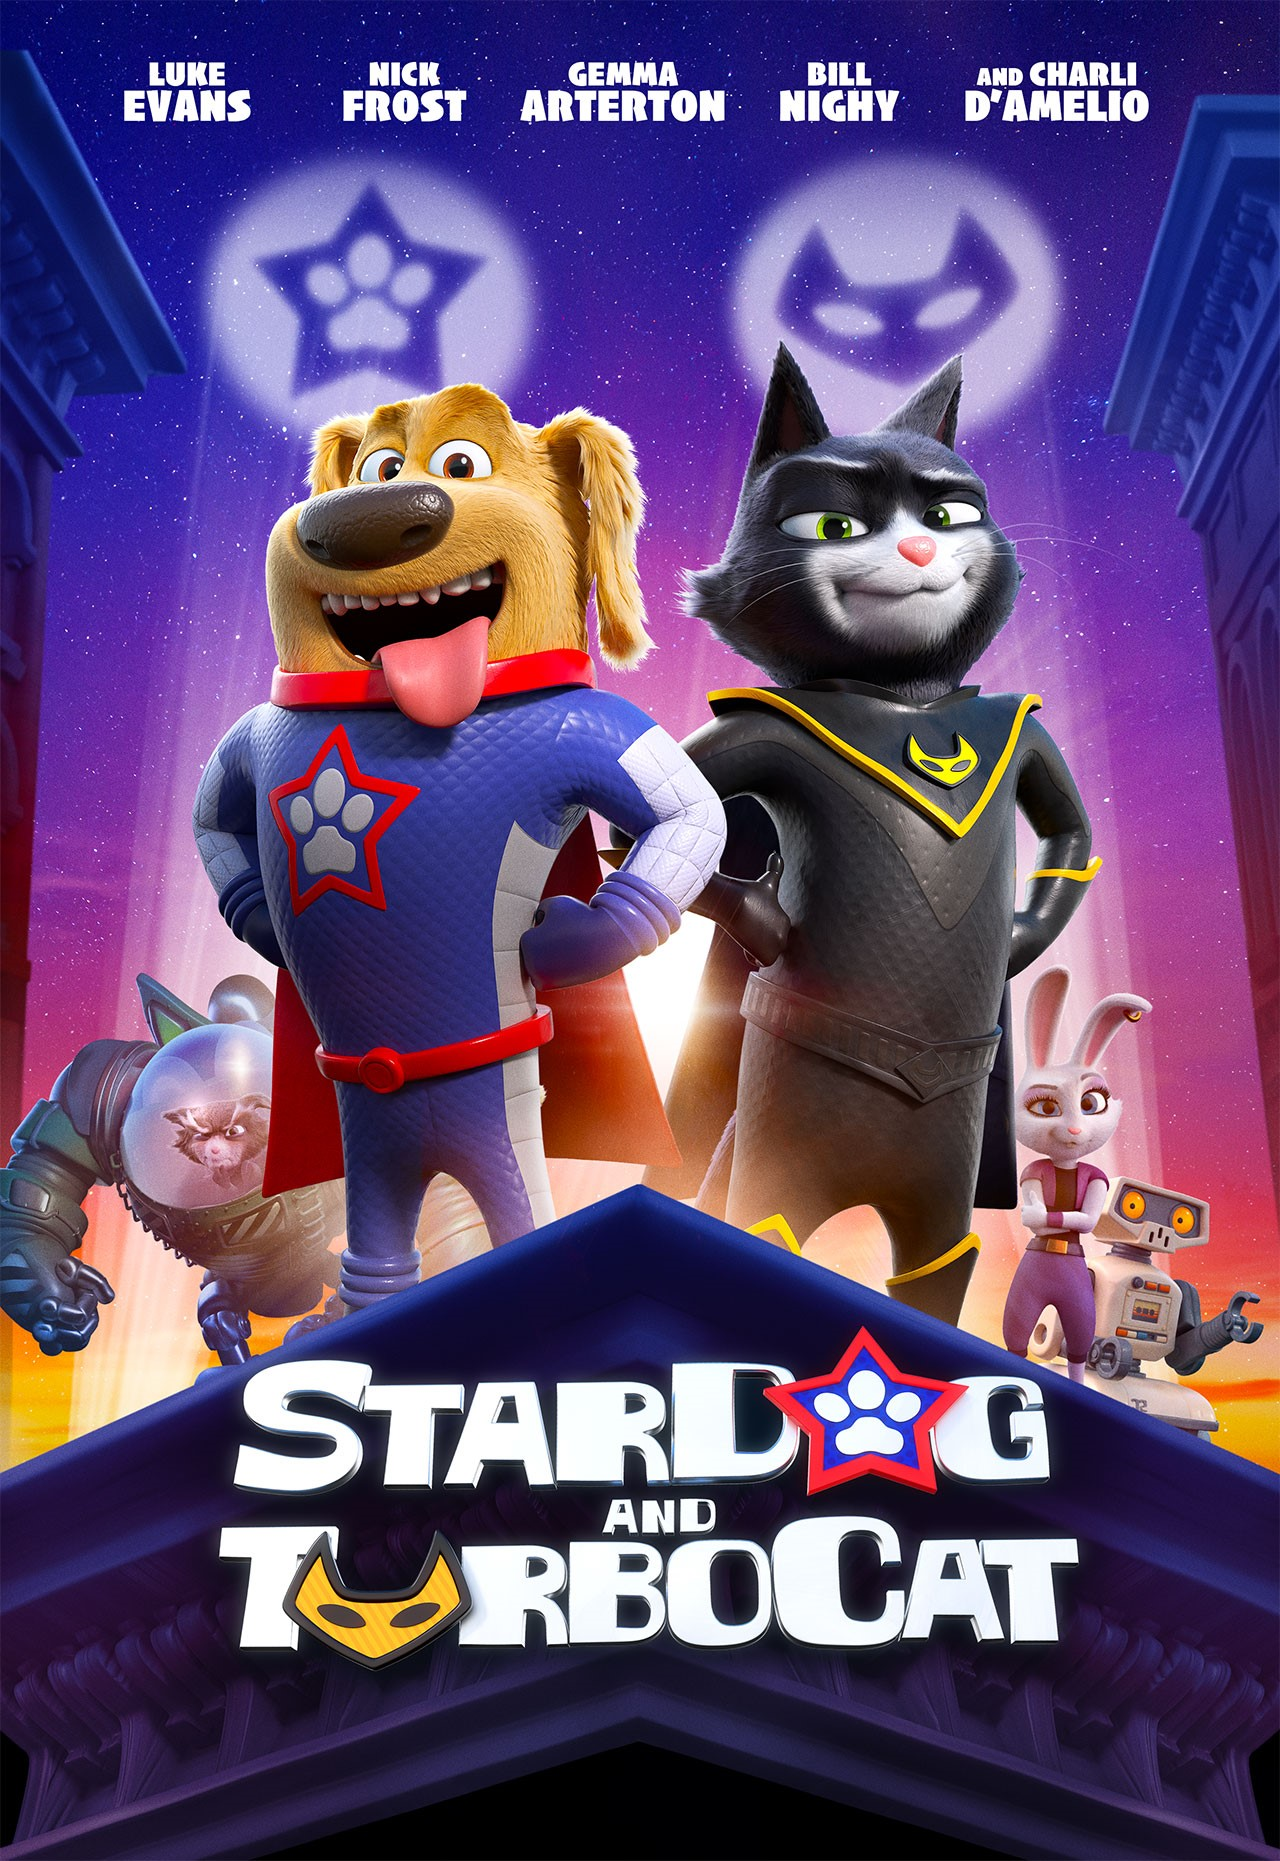 Stardog and turbocoat